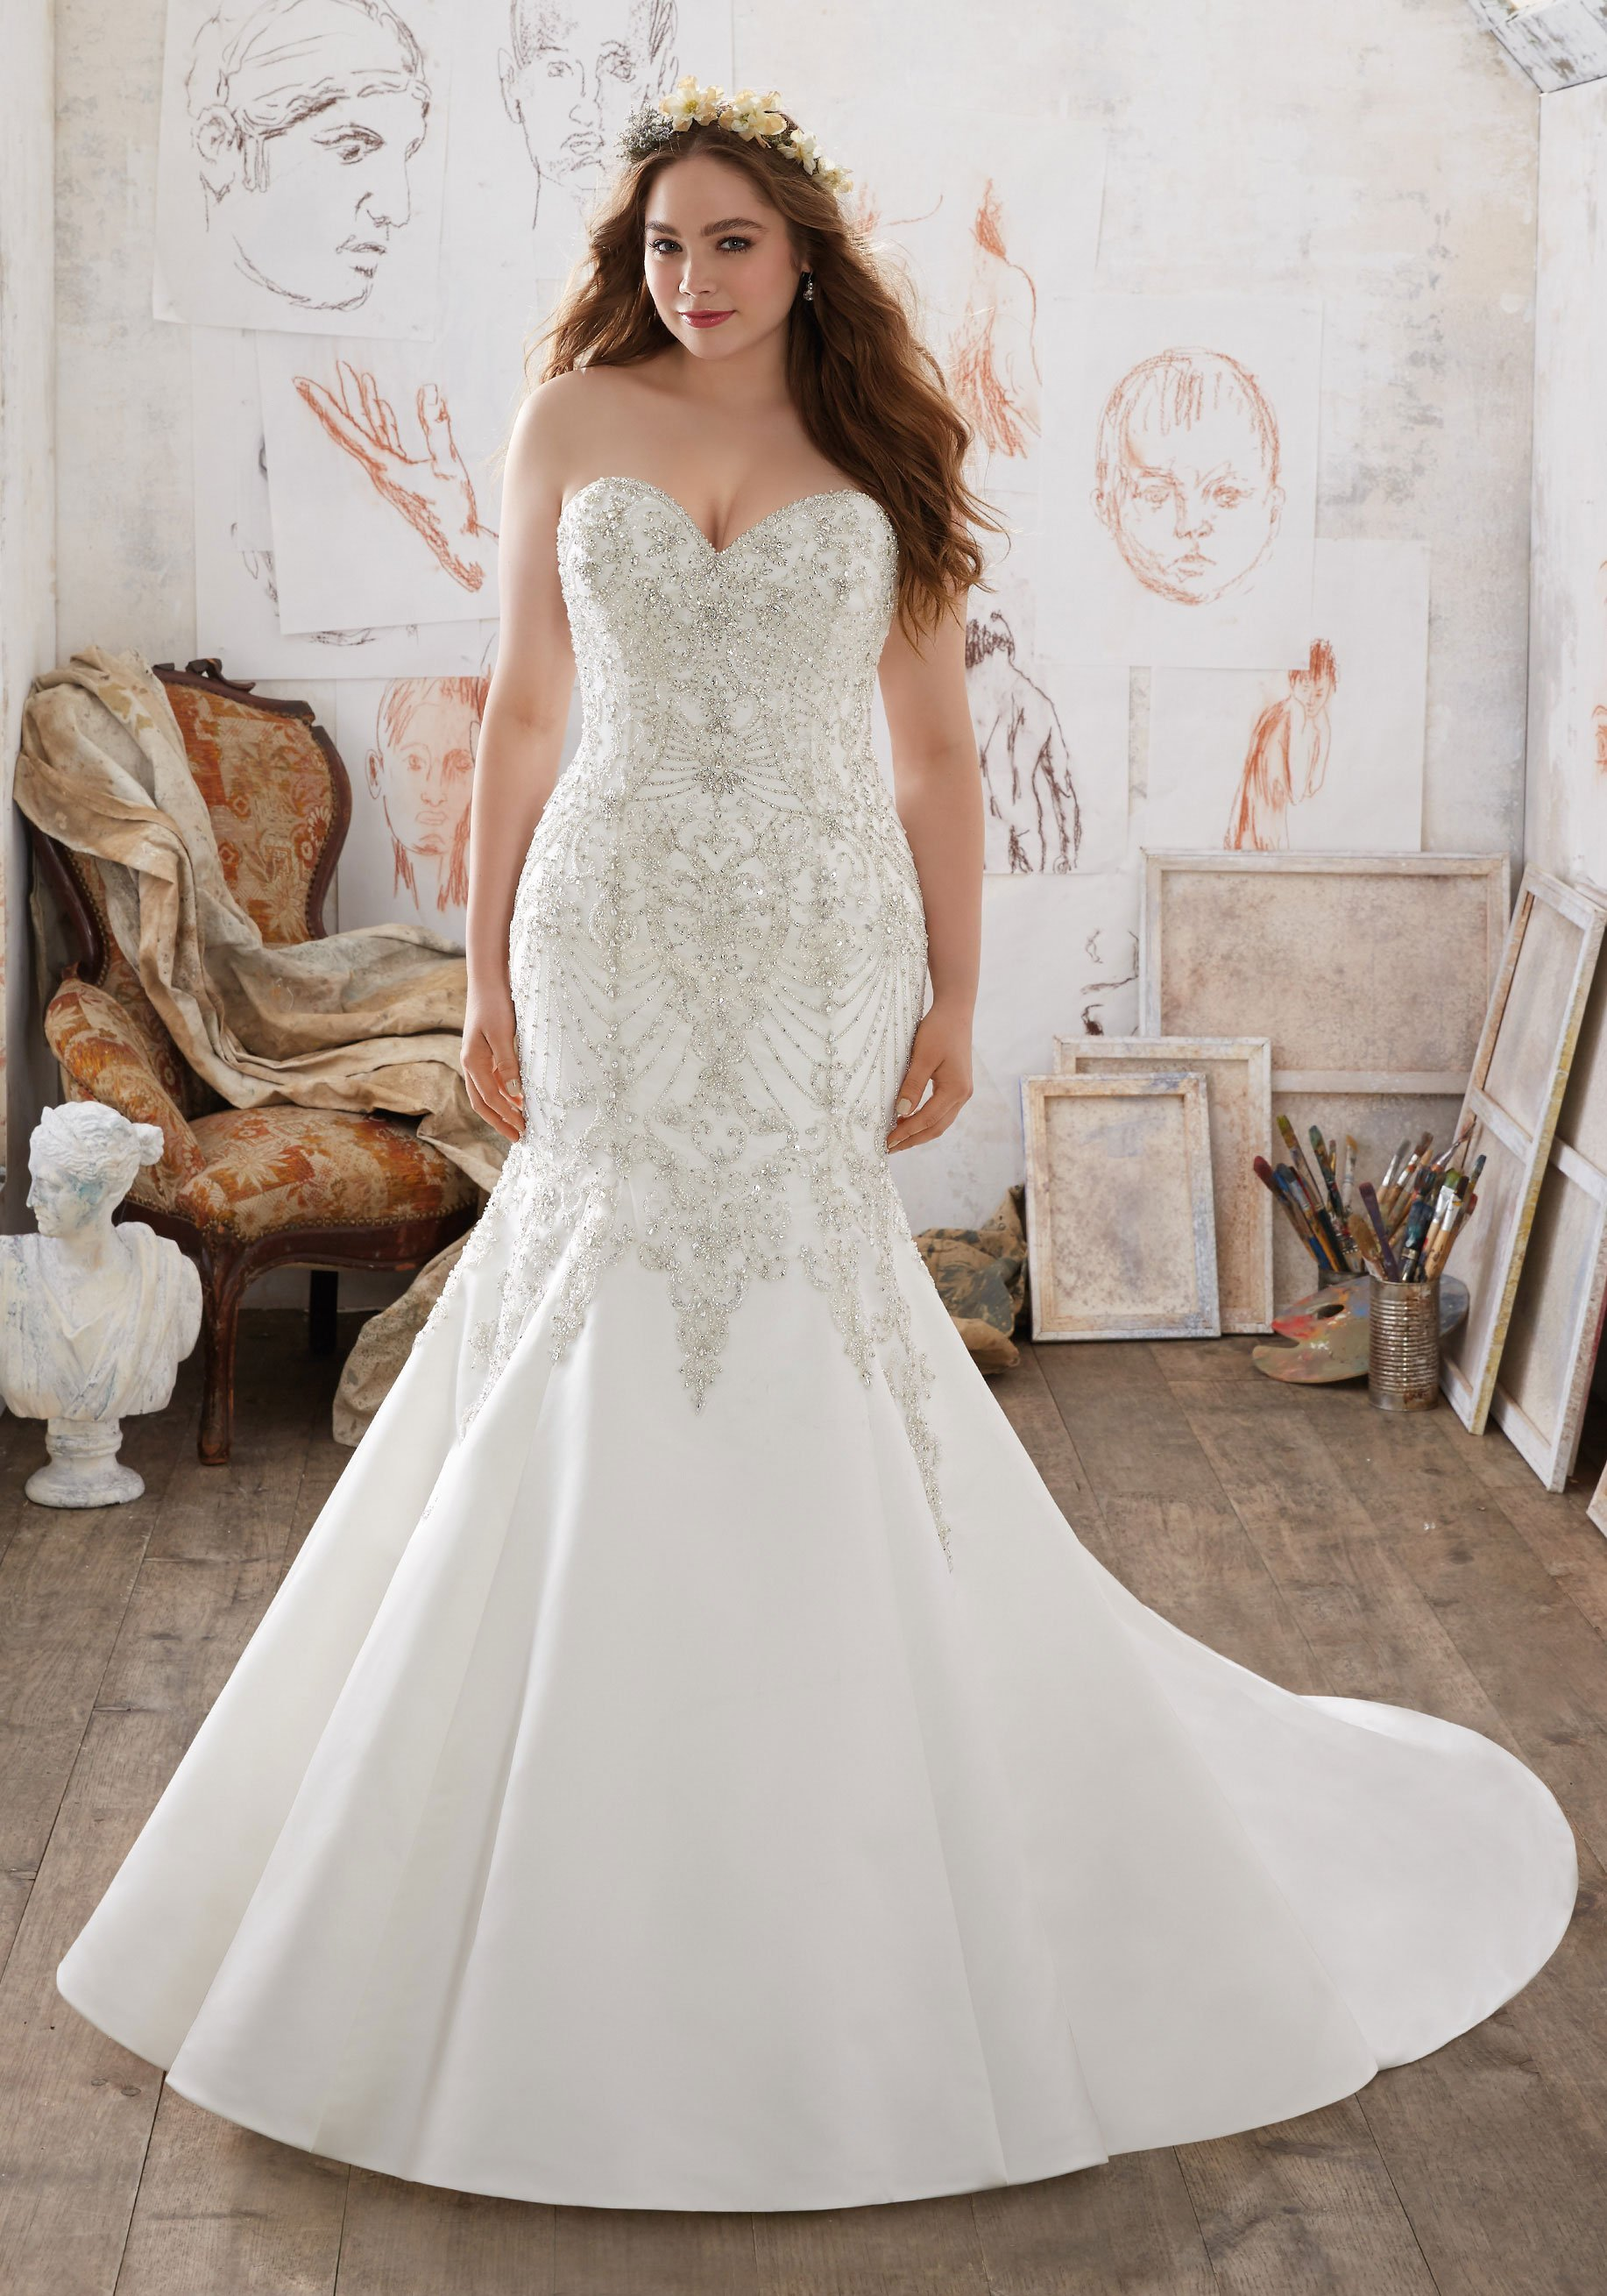 8b833e01edcb Mori Lee Julietta | Just A Day Bridal